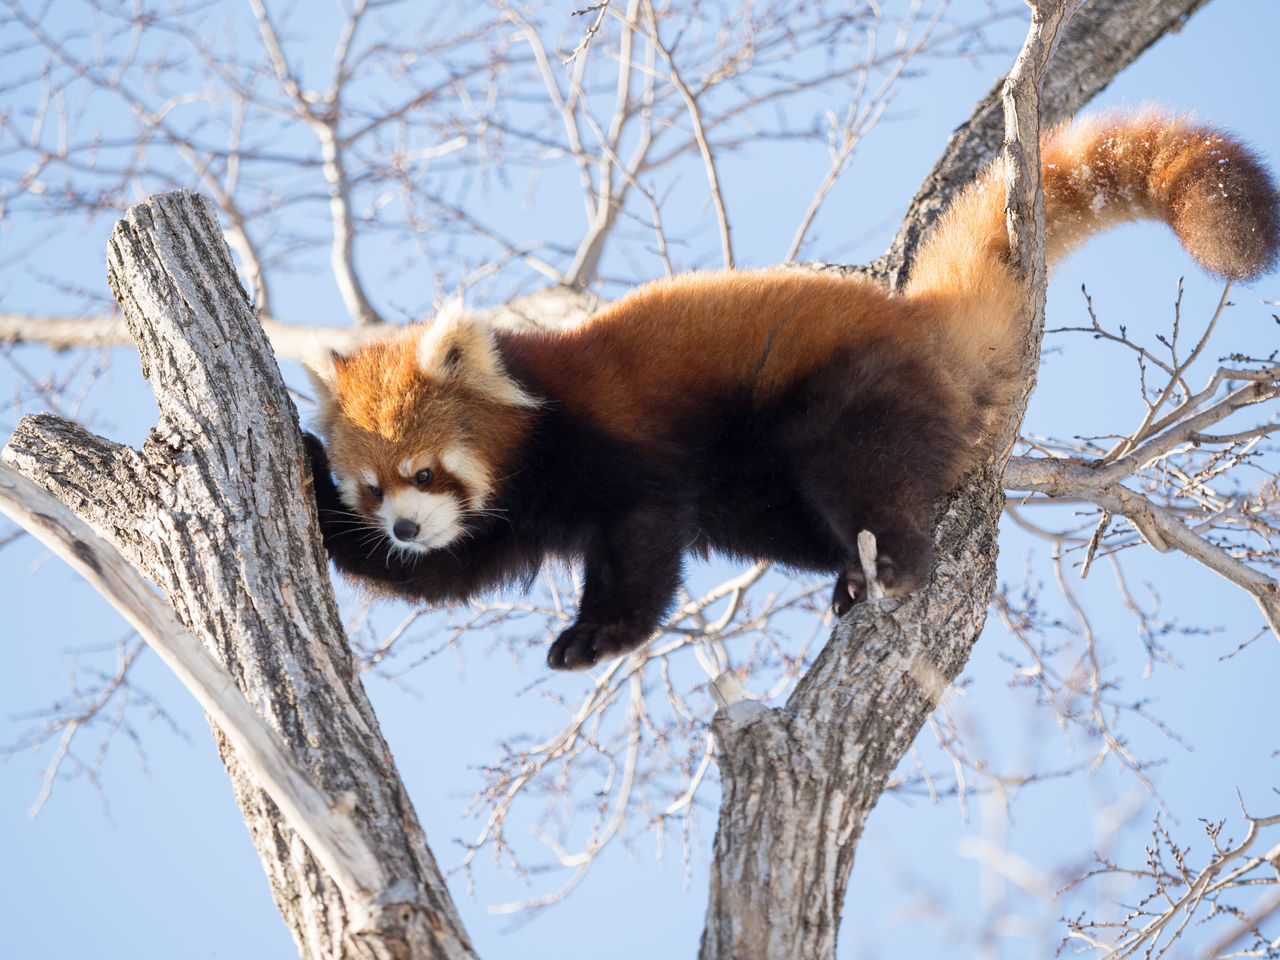 Ailurus Fulgens Animal Themes Animal Wildlife Animals In The Wild Bare Tree Beauty In Nature Branch Cold Temperature Day Lesser Panda Low Angle View Mammal Nature No People One Animal Outdoors Red Panda Sky Snow Tree Winter Zoo